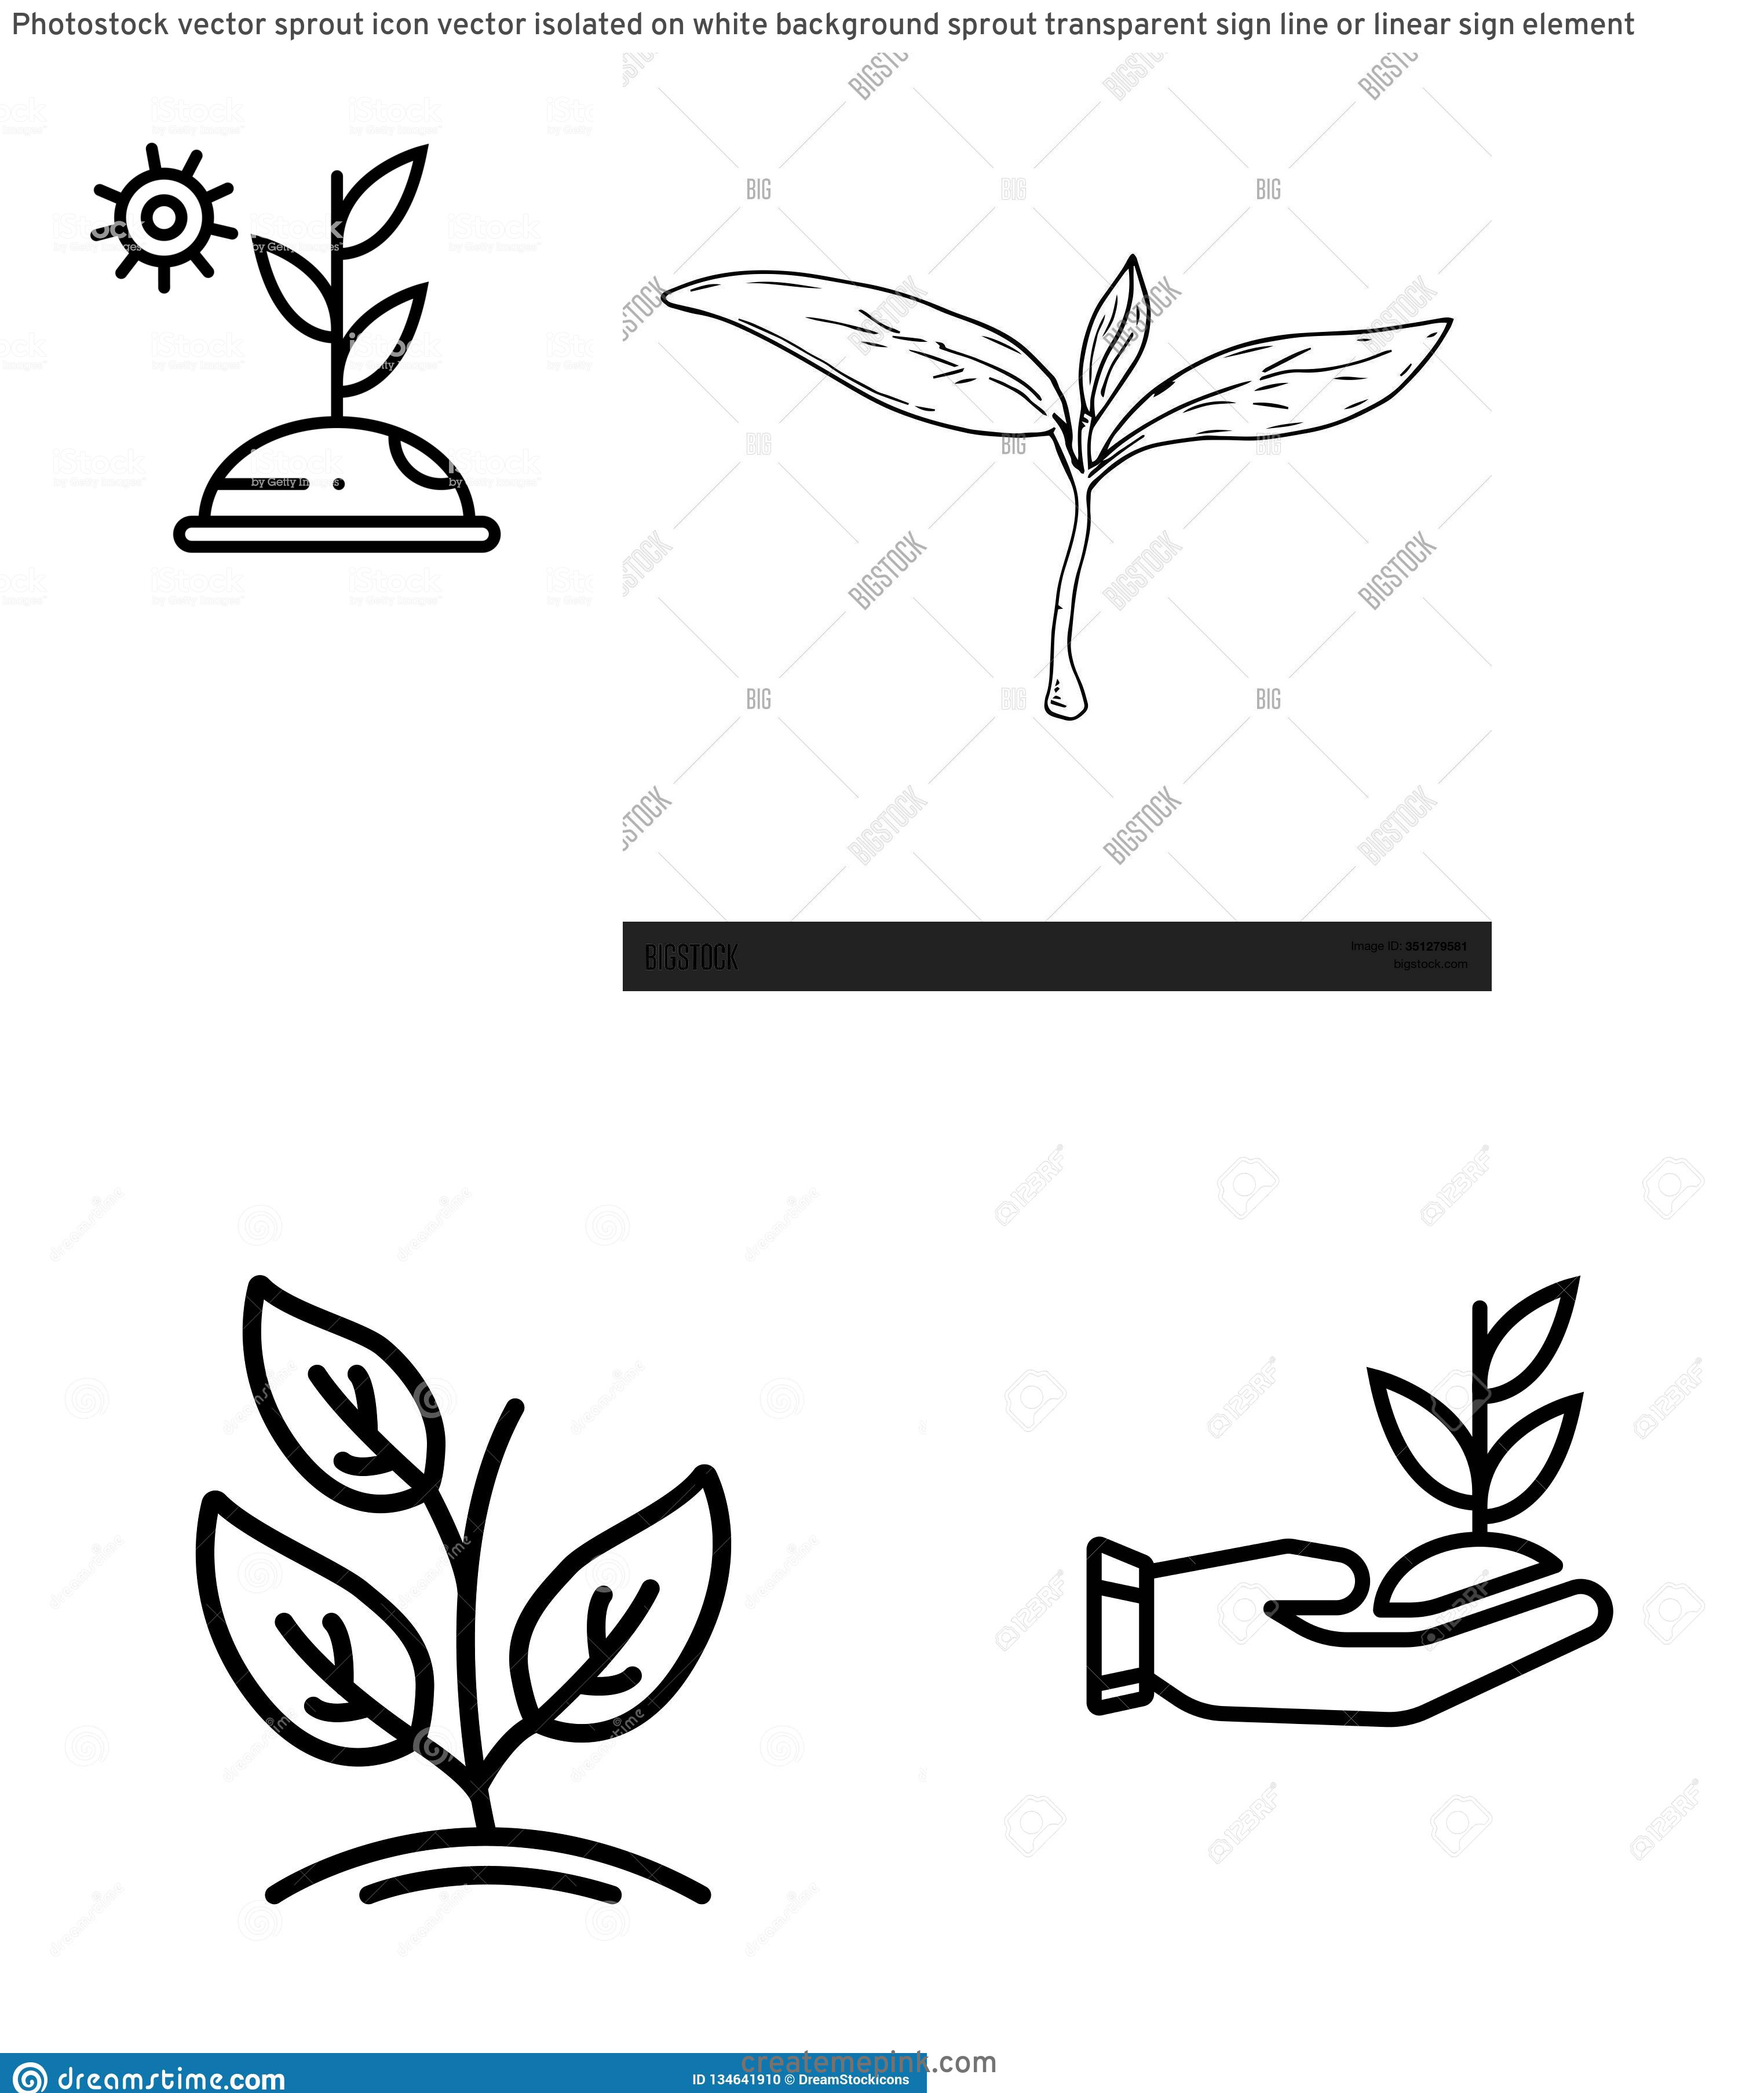 Sprout Icon Vector: Photostock Vector Sprout Icon Vector Isolated On White Background Sprout Transparent Sign Line Or Linear Sign Element